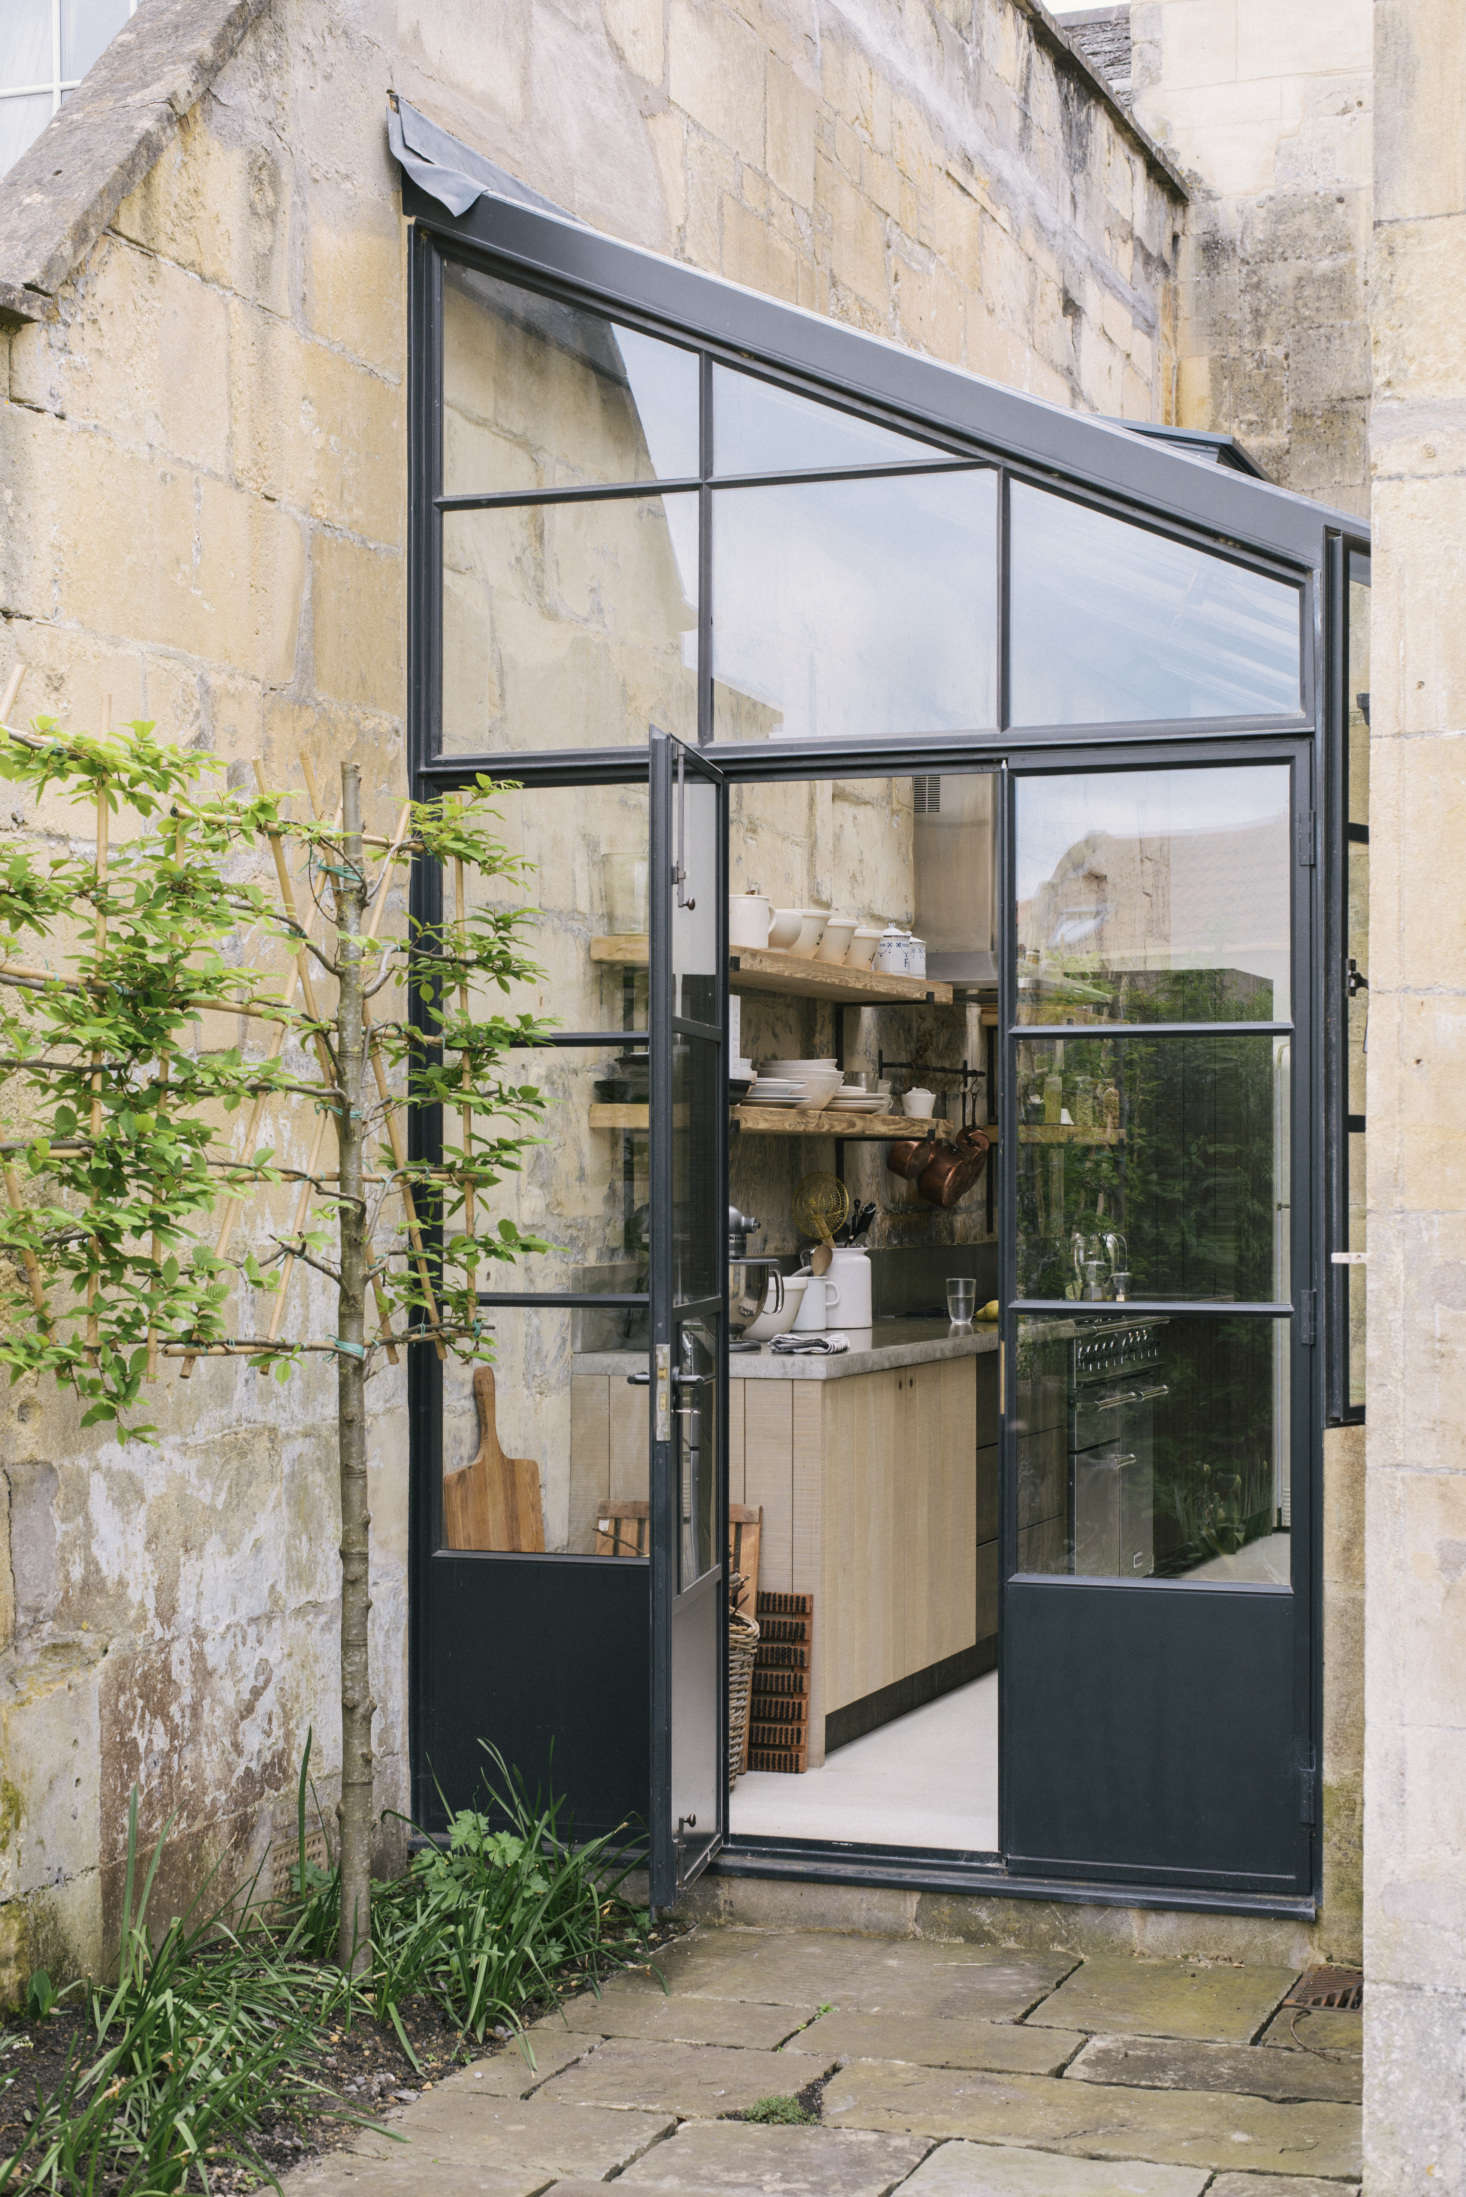 The greenhouse-style extension is fitted between two wings of the house (scroll to the end to see a stepped-back view). The couple worked with Mark Watson of architect-surveyors Watson, Bertram & Fell to draw up plans and secure building permissions; the bespoke steel-framed doors are by Fabco.